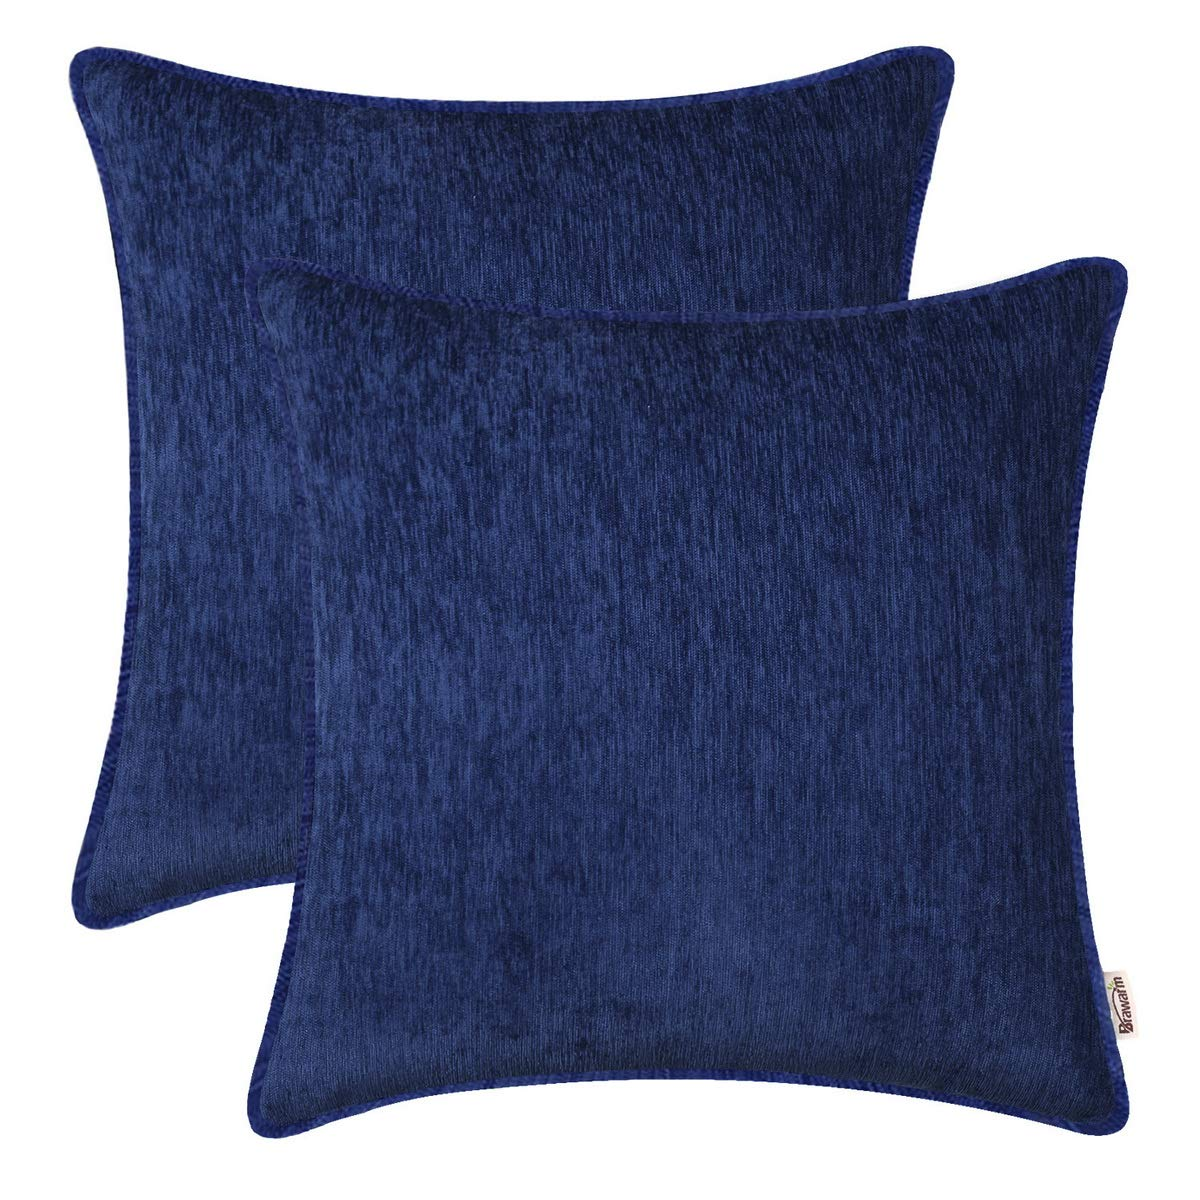 BRAWARM Pack of 2 Cozy Throw Pillow Covers Cases for Sofa Couch Home Decoration Solid Dyed Striped Soft Chenille with Piping 16 X 16 Inches Navy Blue